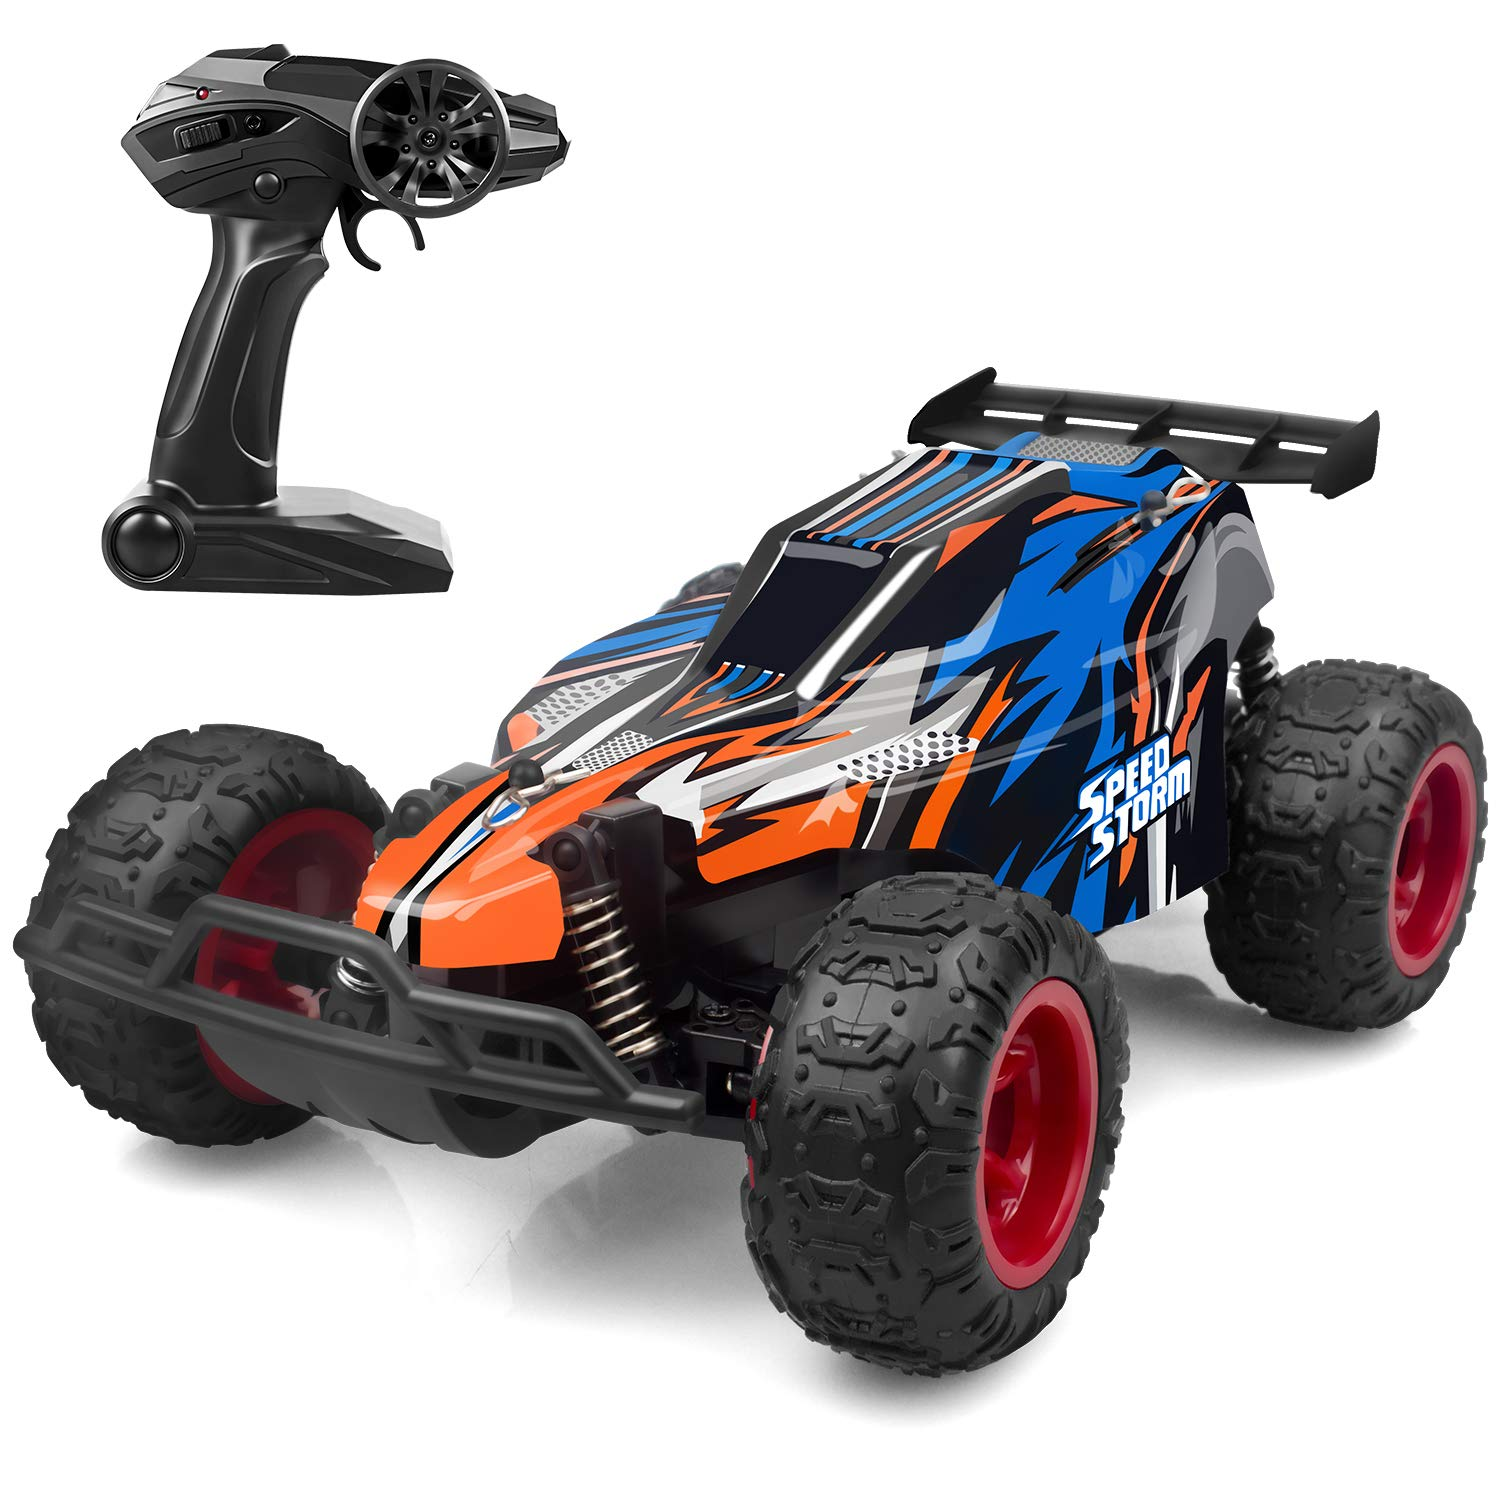 JEYPOD Remote Control Car, 2.4 GHZ High Speed Racing Car with 4 Batteries, Blue by JEYPOD